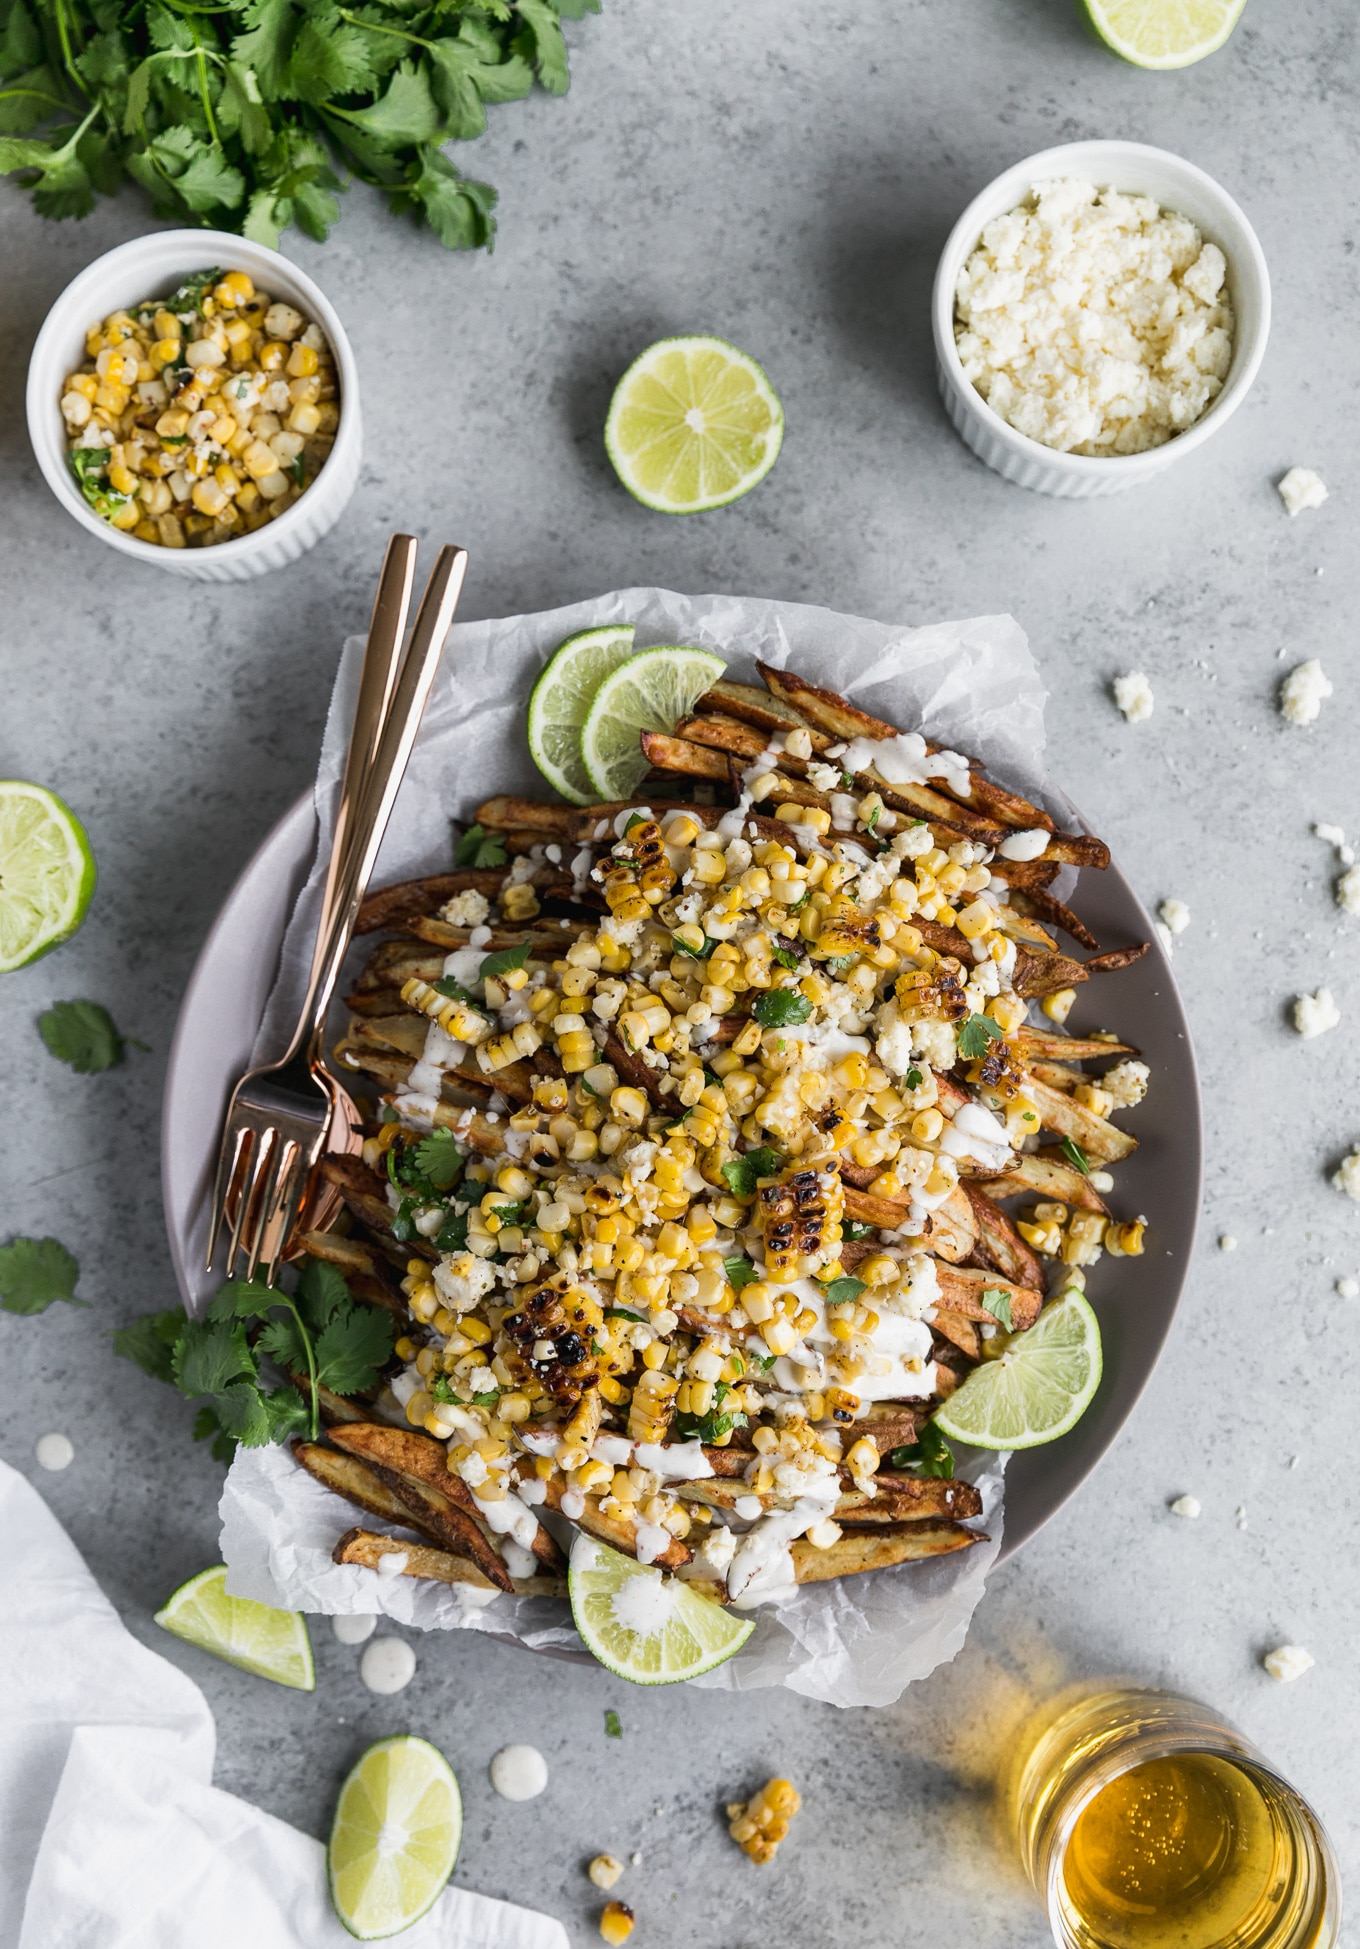 Overhead shot of fries topped with Mexican street corn, crema, lime wedges, and cilantro, with a fork and spoon resting on the plate, and a glass of beer in the bottom right corner